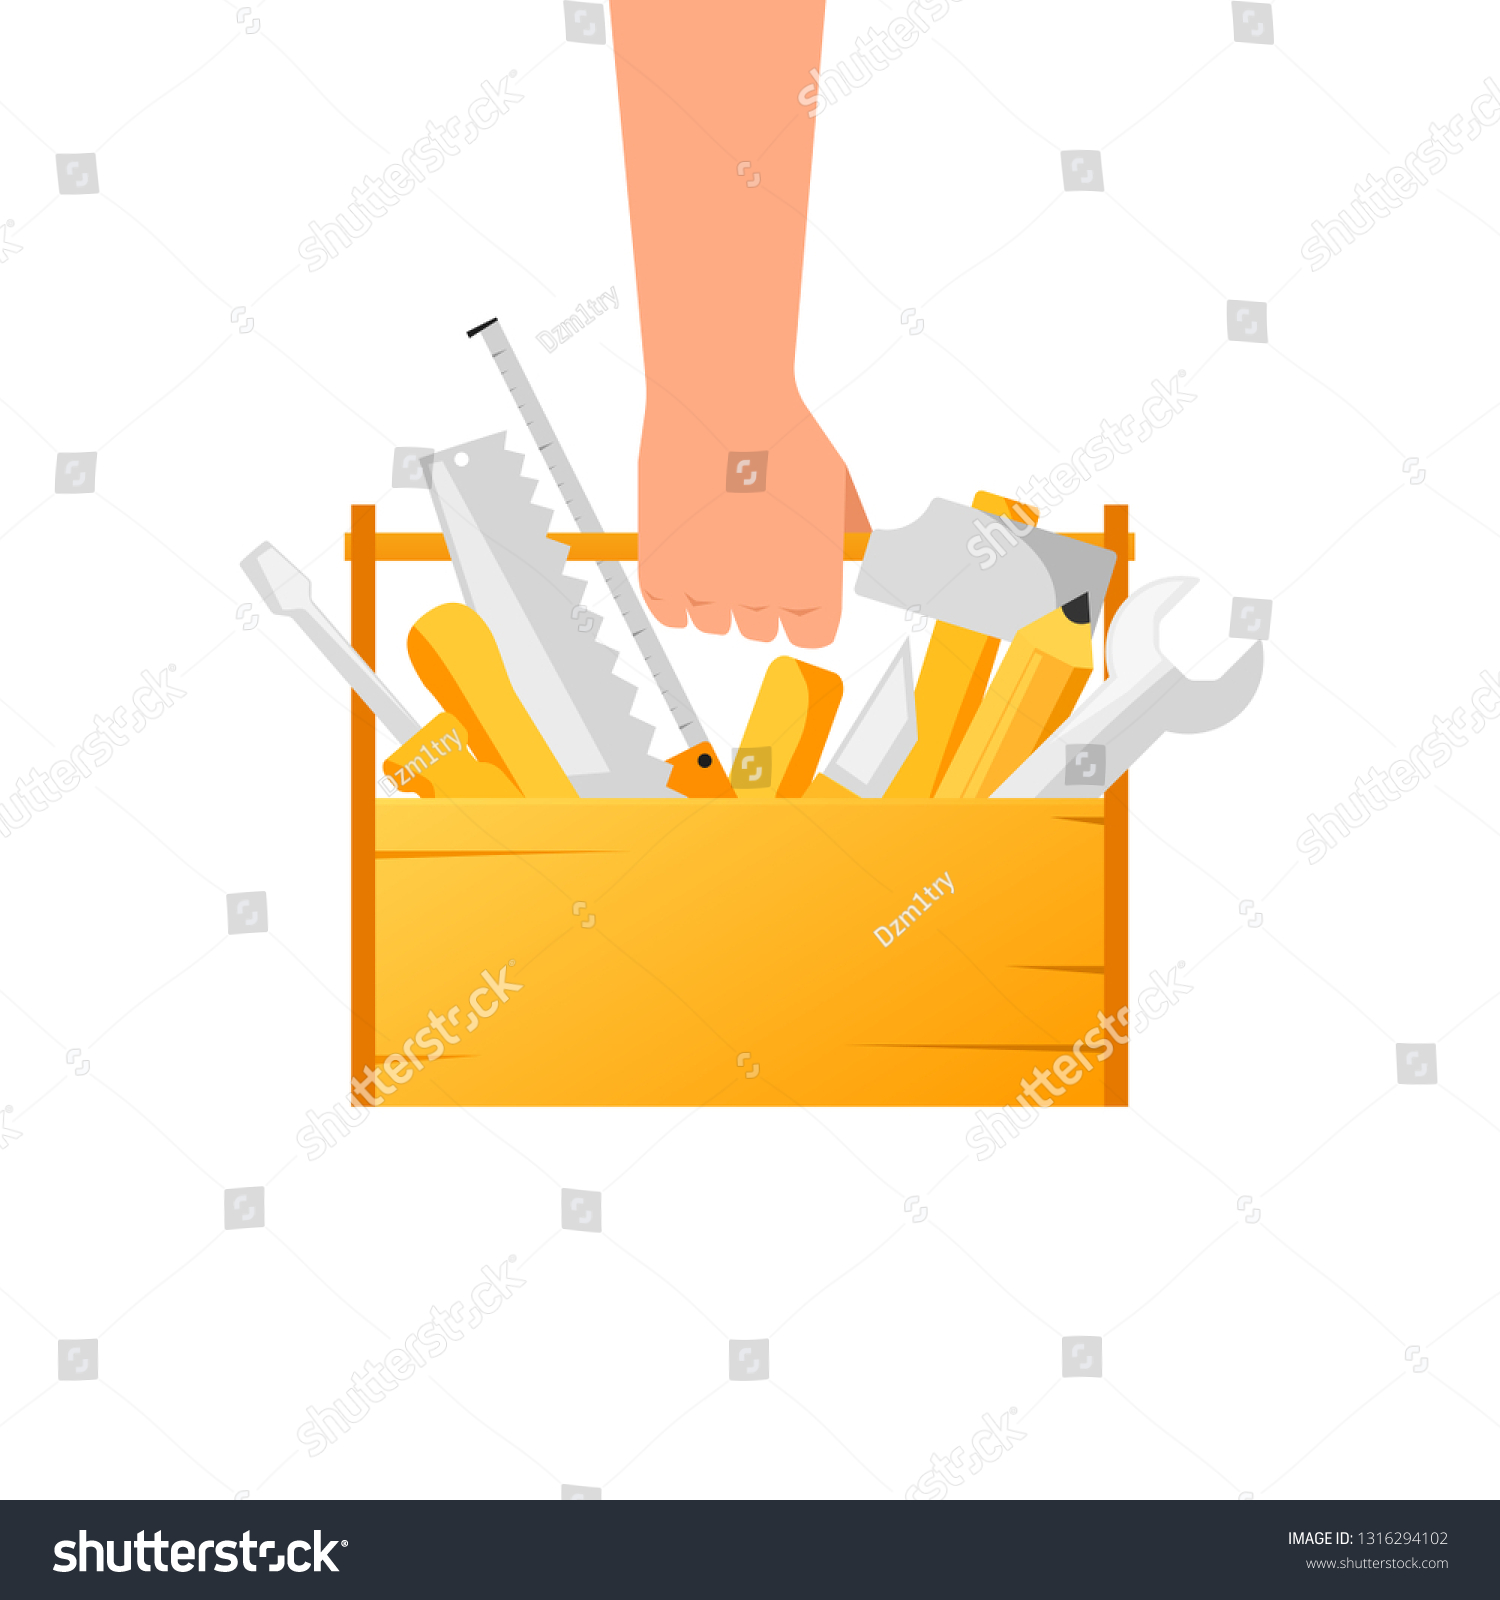 hight resolution of hand holding toolbox with tools clipart image isolated on white background